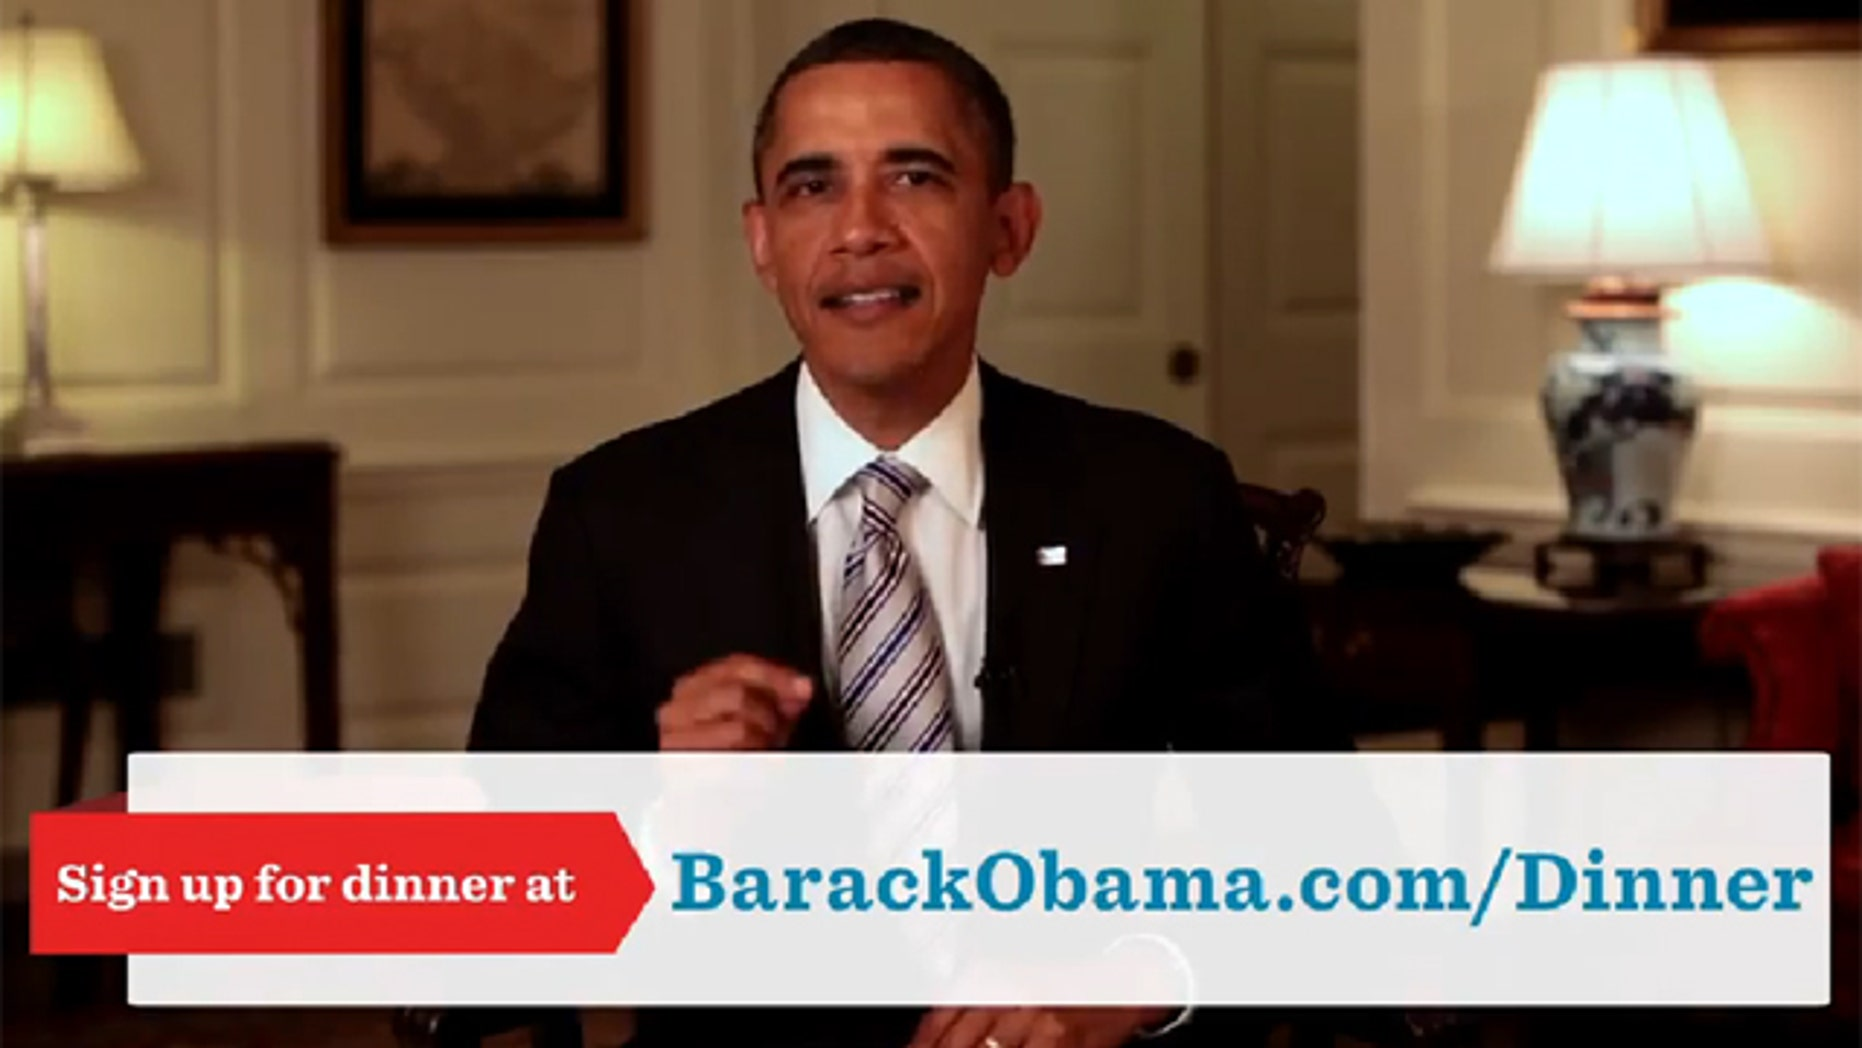 Shown here is an image from a recent campaign ad featuring President Obama.